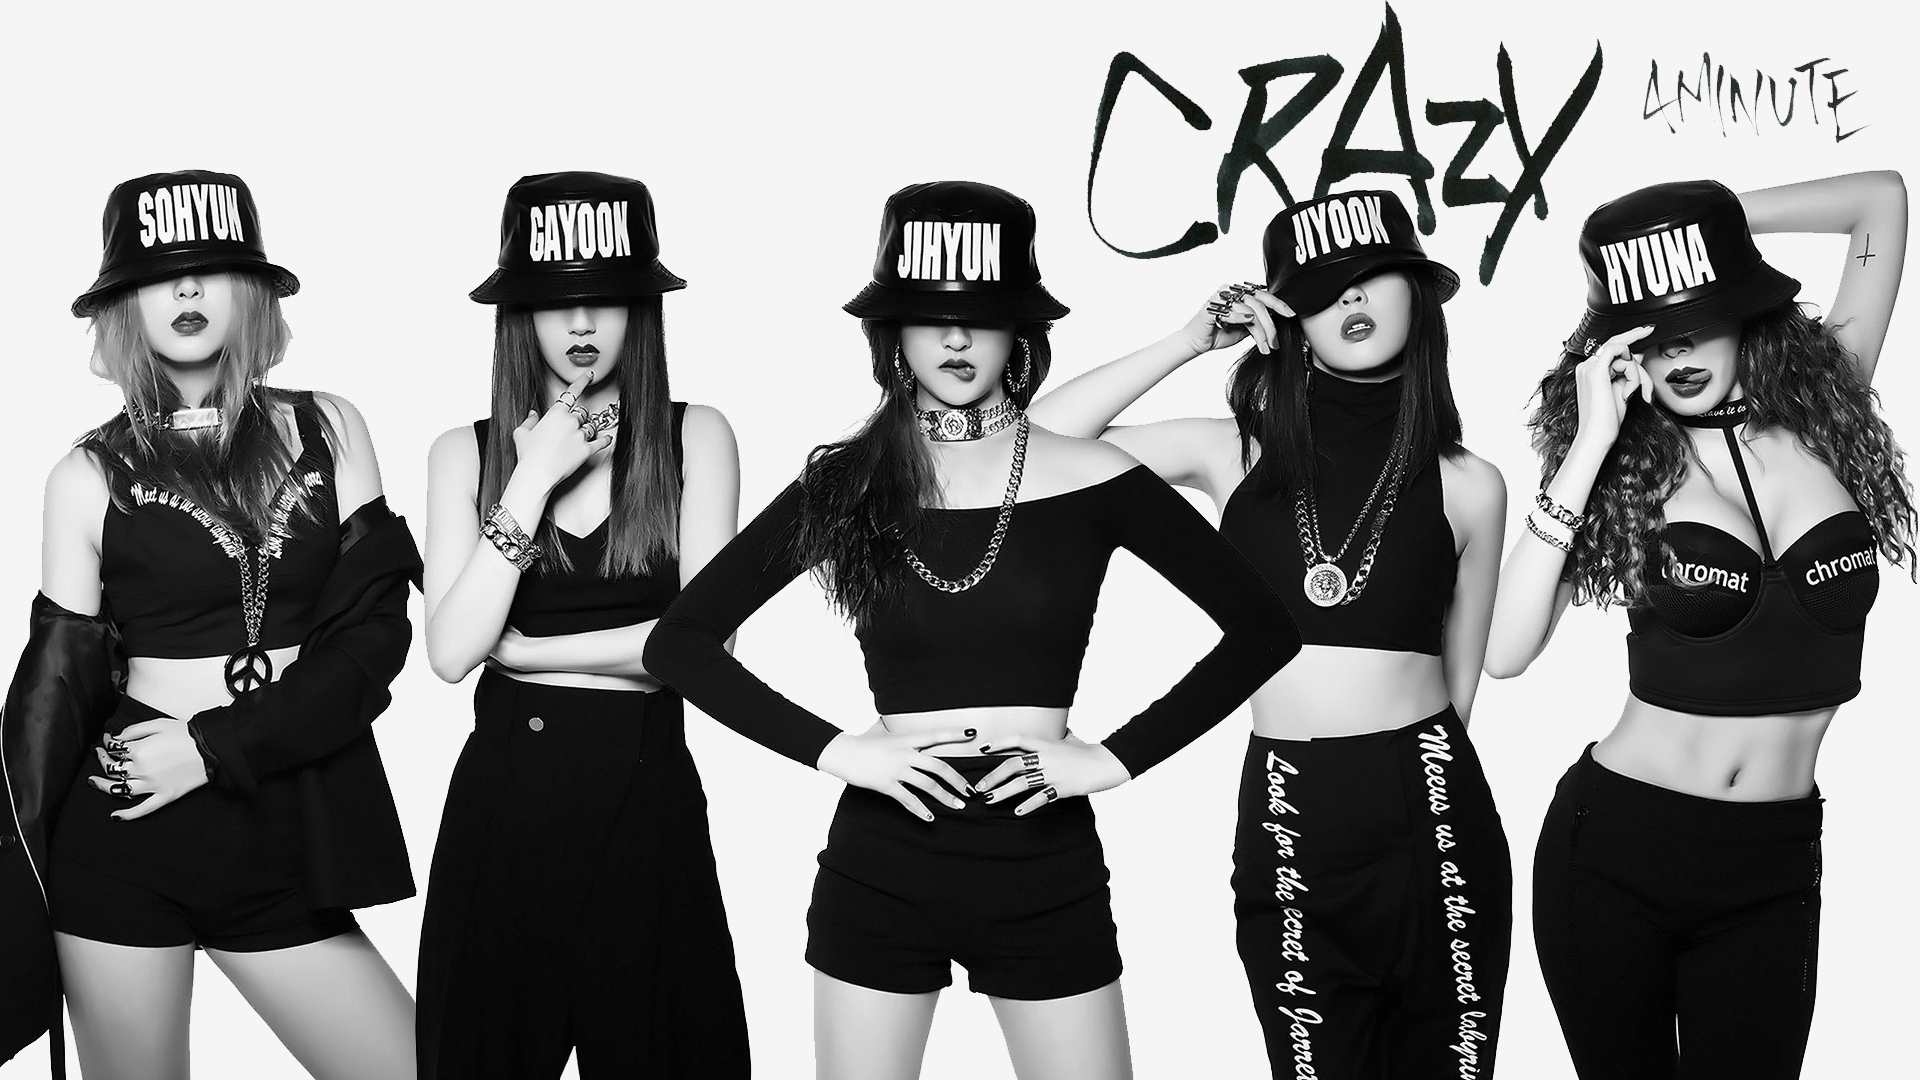 4minute is Crazy Thought Blog 1920x1080